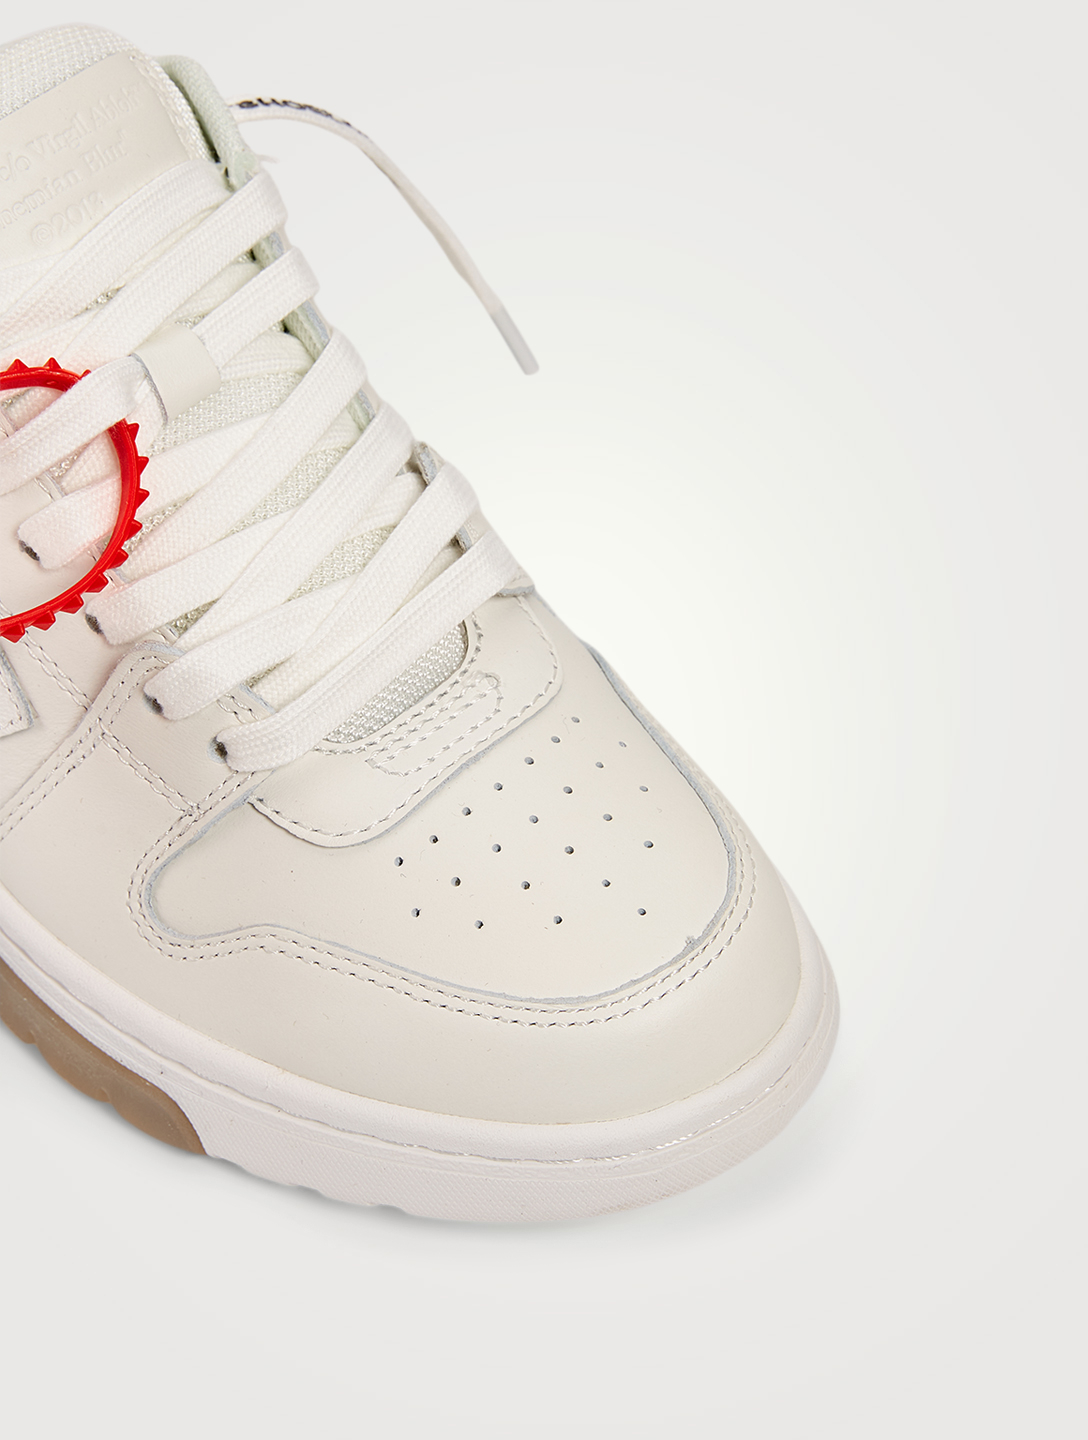 OFF-WHITE Sneakers Out Of Office « OOO » en cuir Femmes Blanc